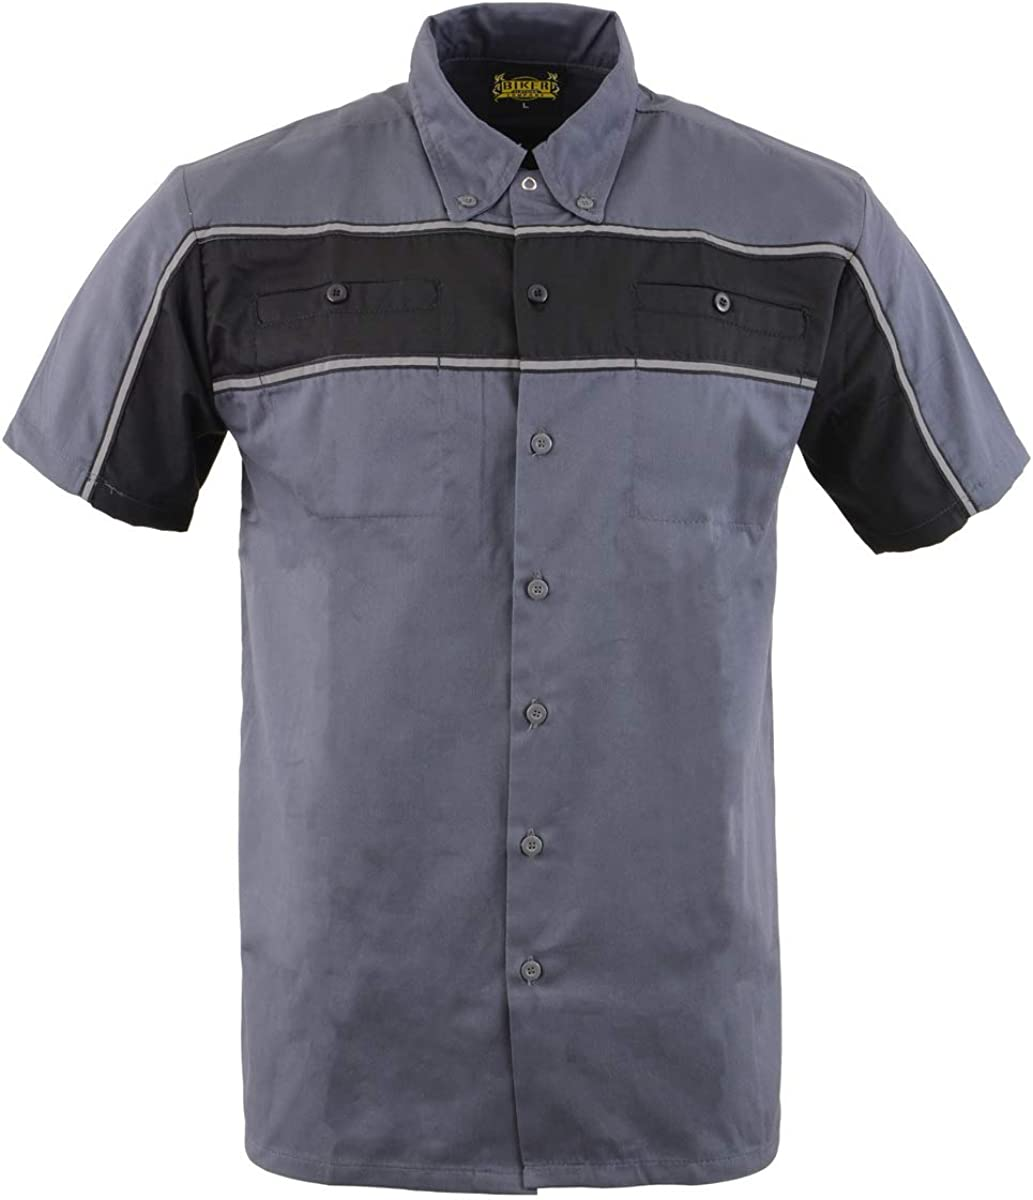 Biker Clothing Co. MDM11671.149 Men's Grey and Black Short Sleeve Mechanic Shirt with Reflective Material